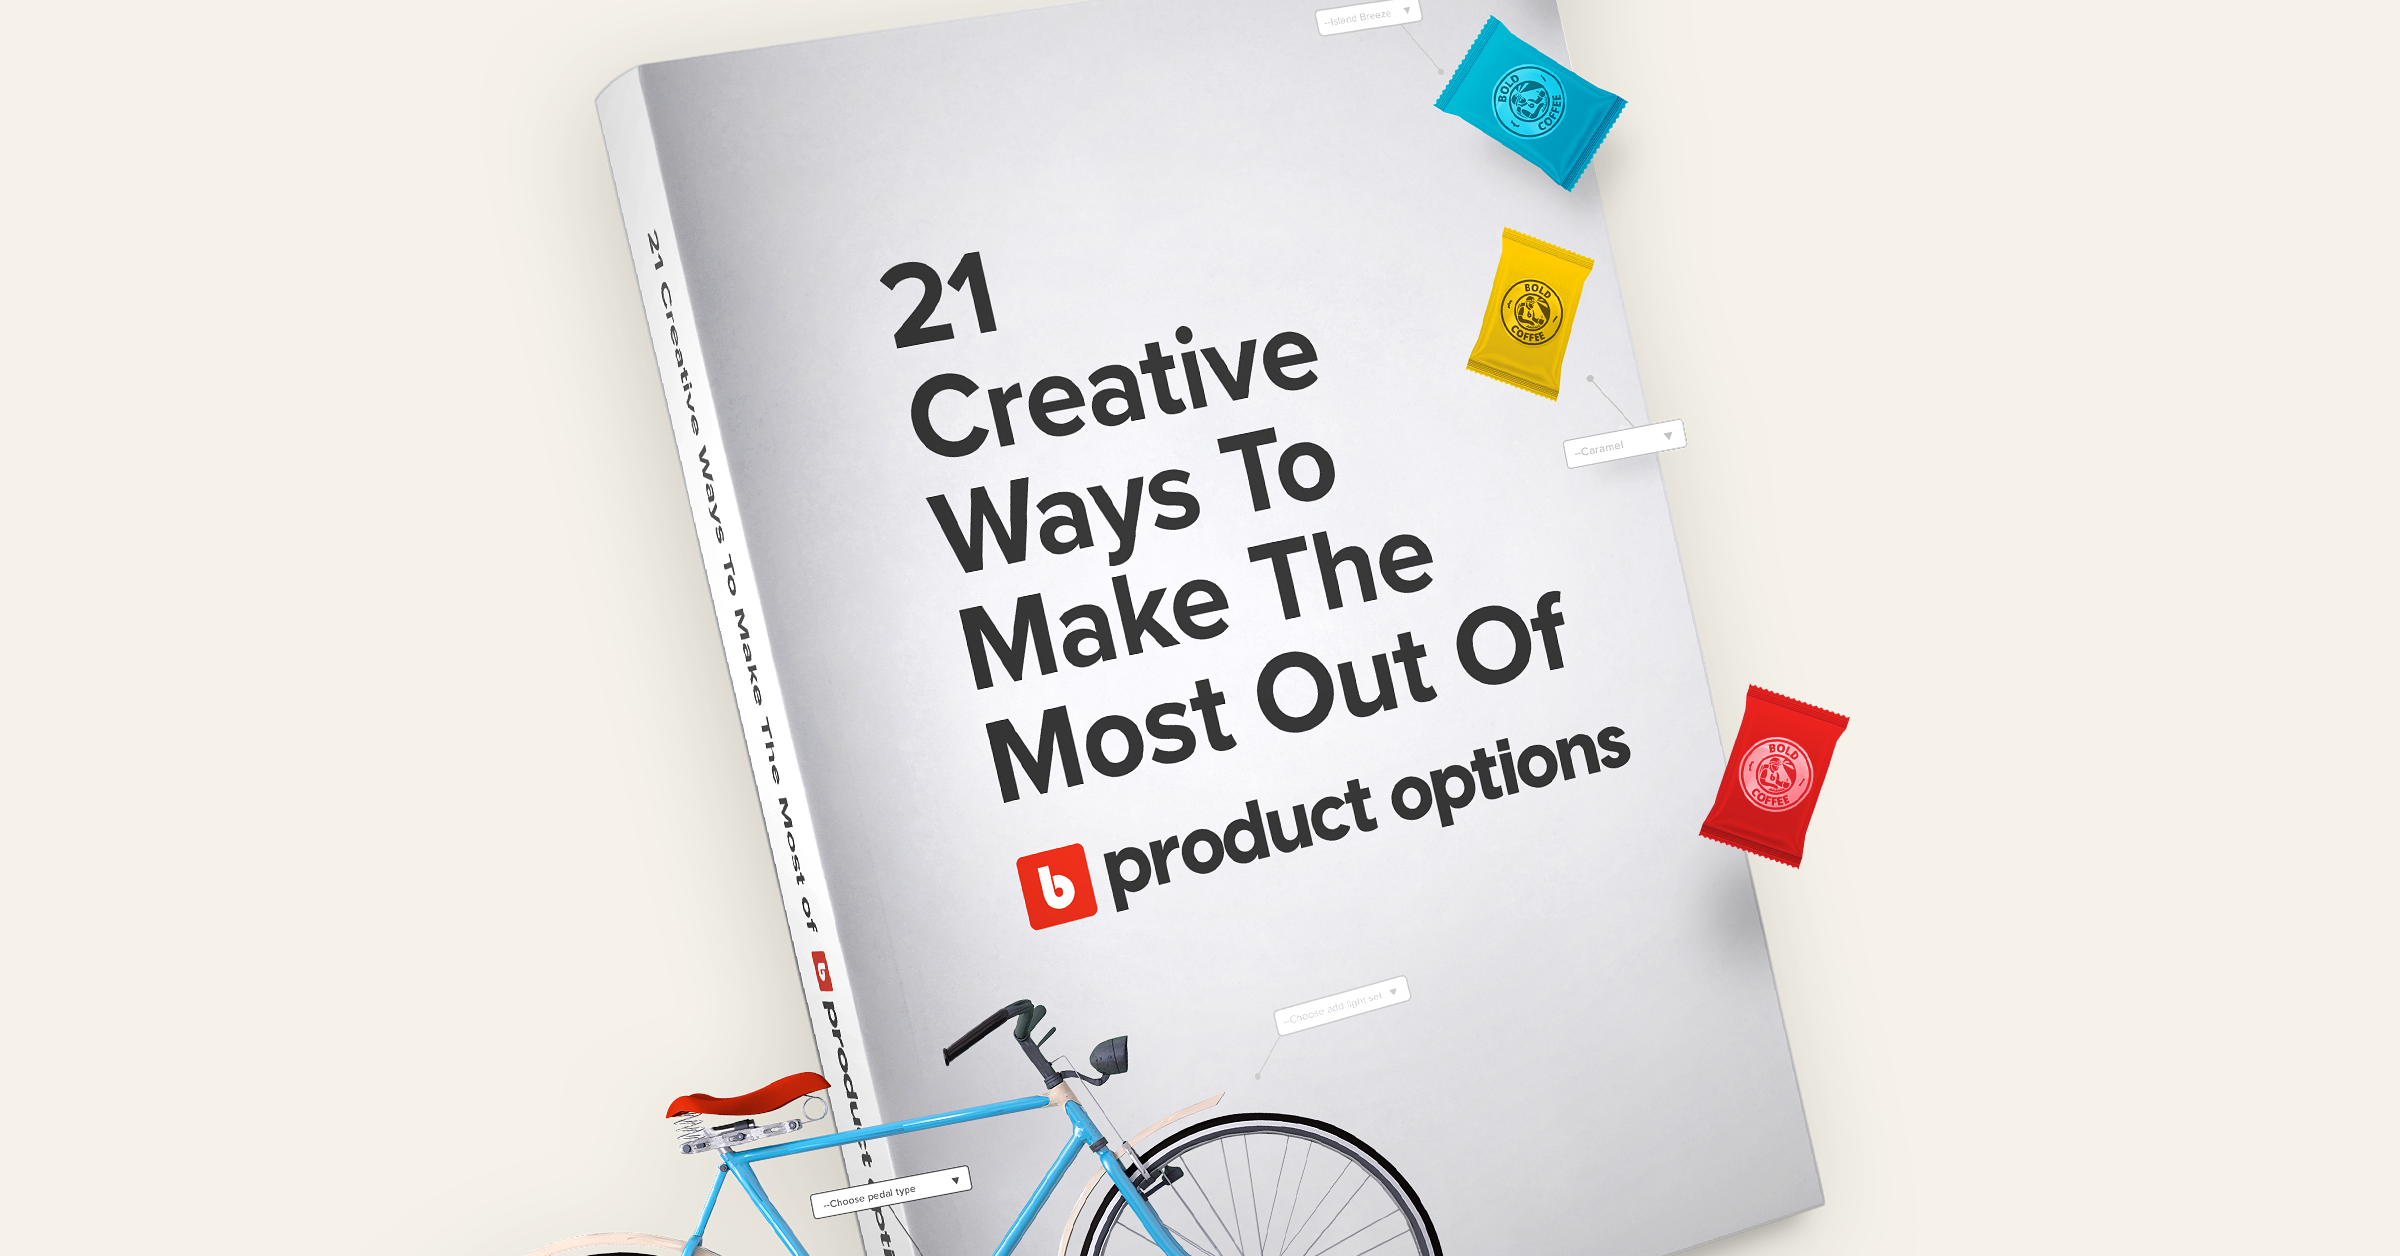 21 Creative Ways to Make the Most of Bold Product Options